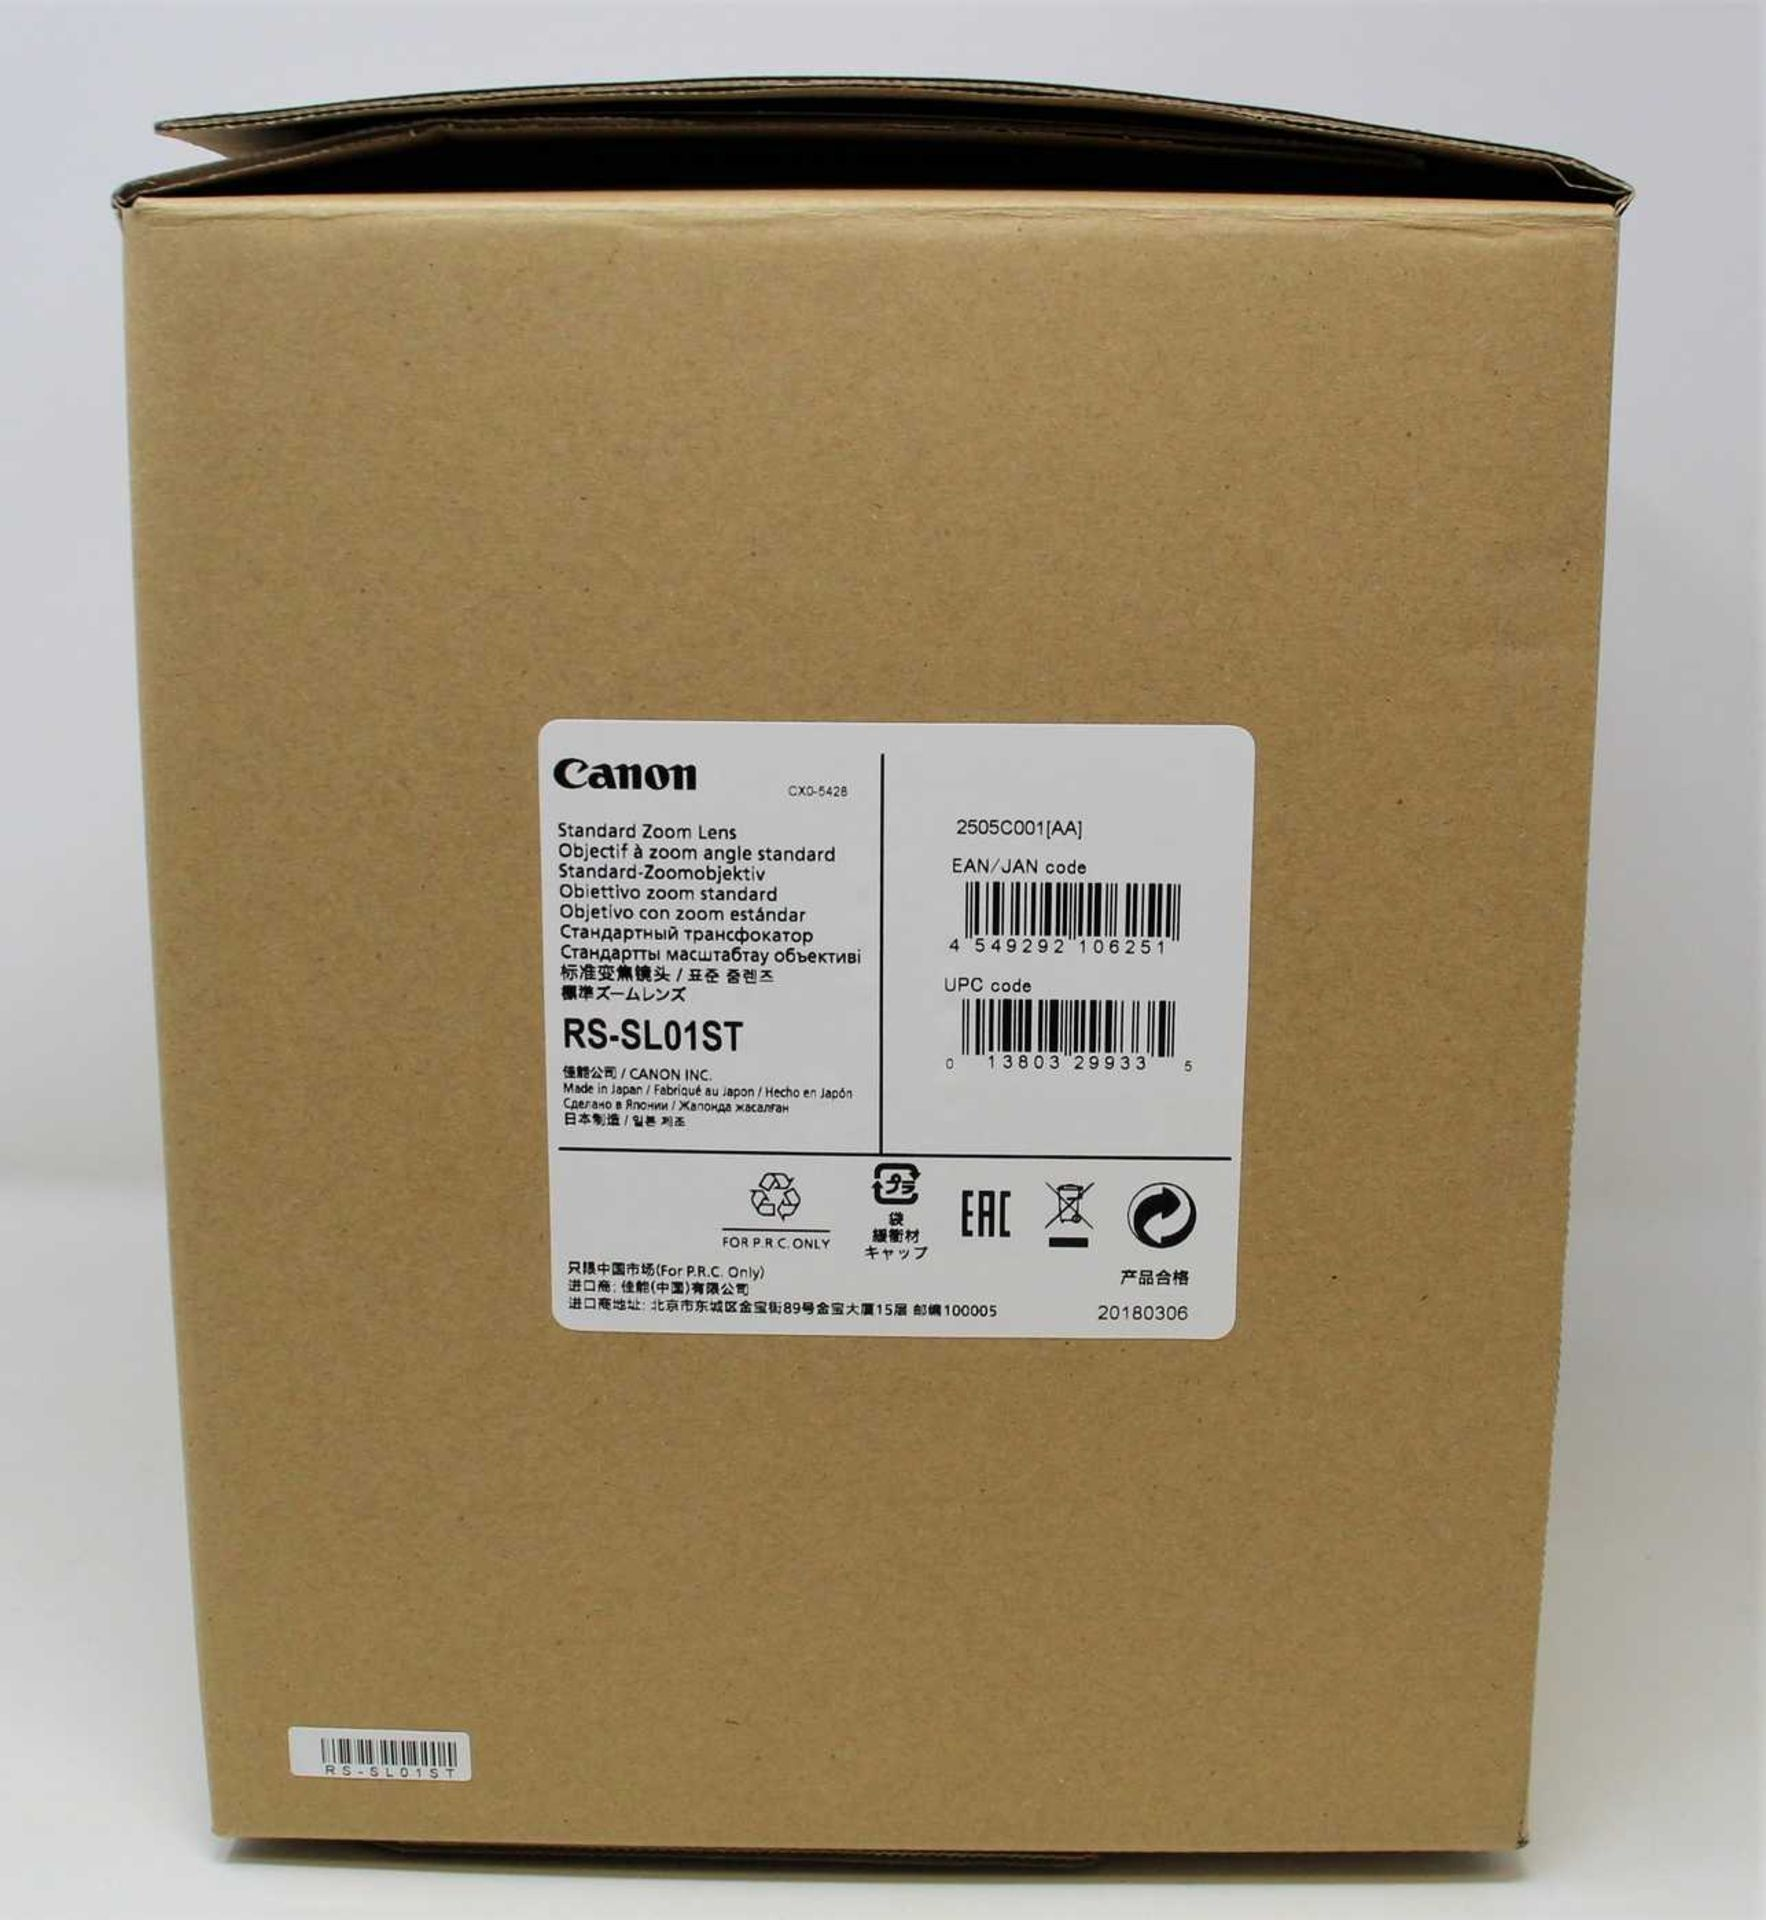 A boxed as new Canon RS-SL01ST Standard Zoom Projector Lens (2505C001[AA]) (Box opened).